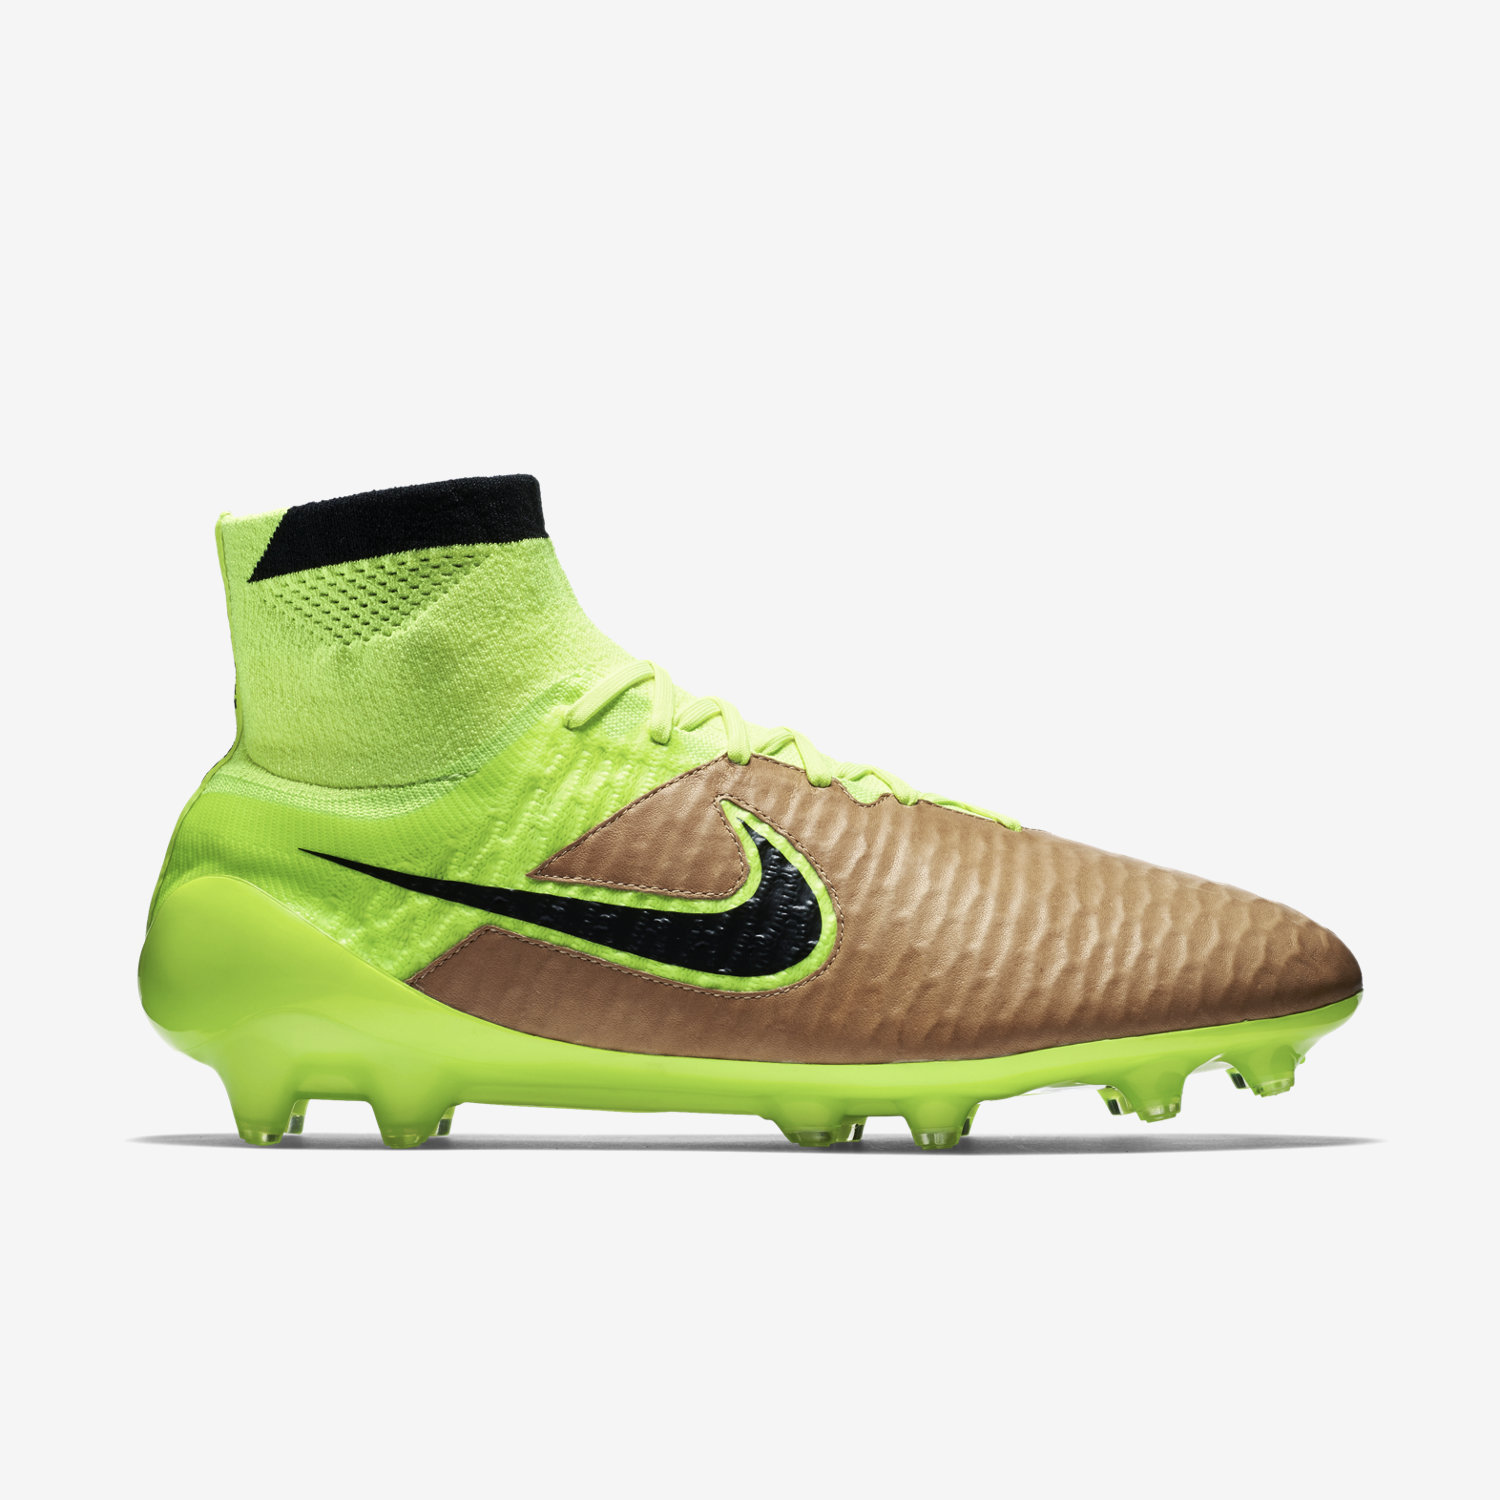 52d73adabe23 nike shoes magista on sale > OFF78% Discounts